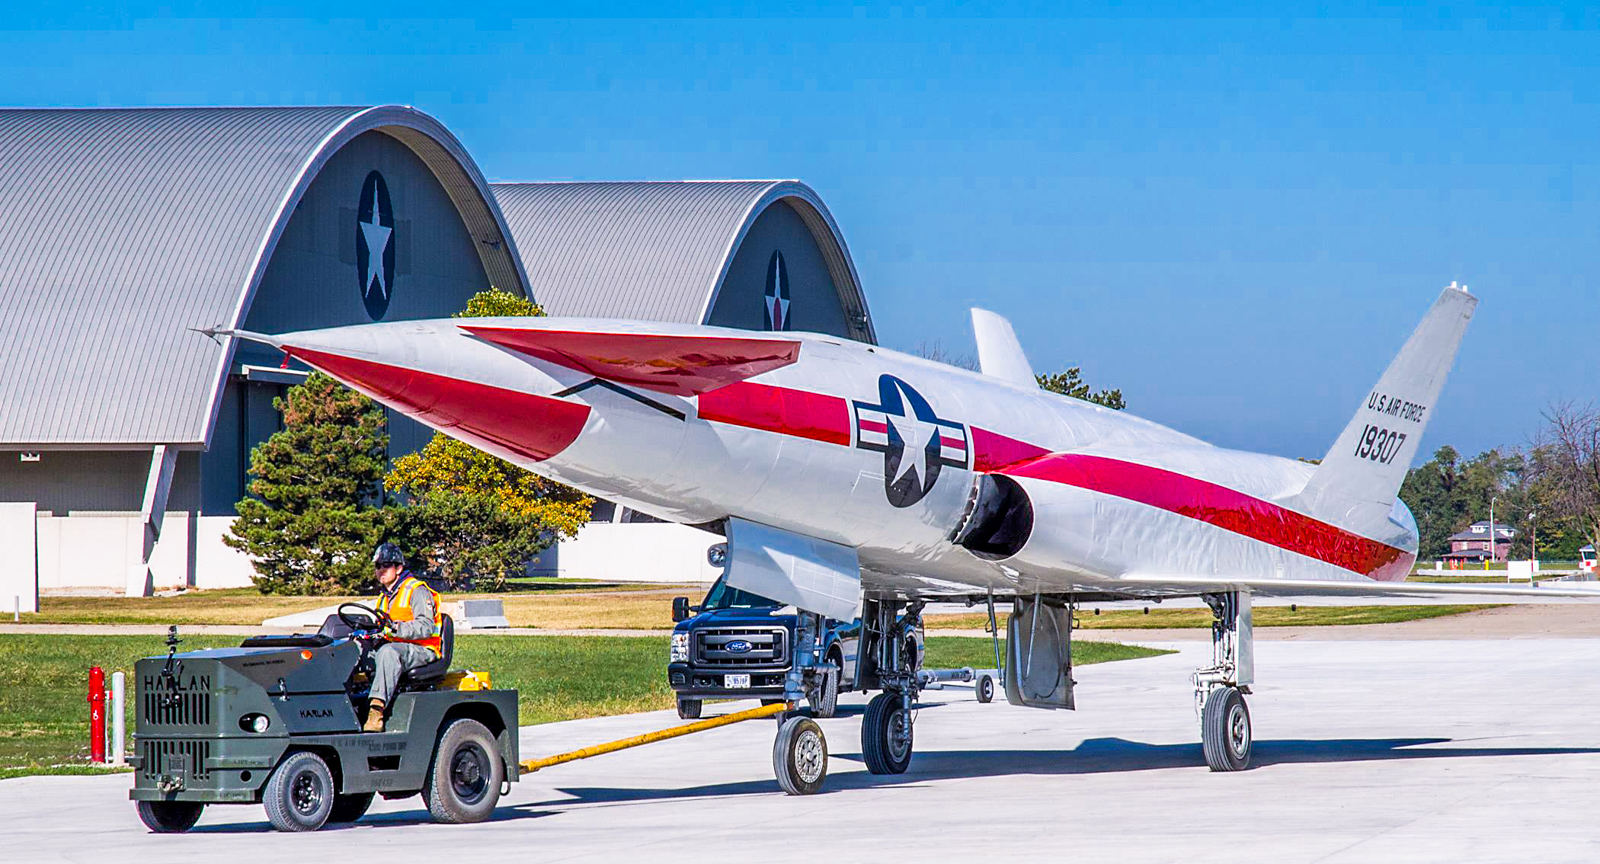 The sole surviving North American X-10 of five built on its journey to the new fourth building at the National Museum of the U.S. Air Force on Oct. 14, 2015. (U.S. Air Force photo by Ken LaRock)